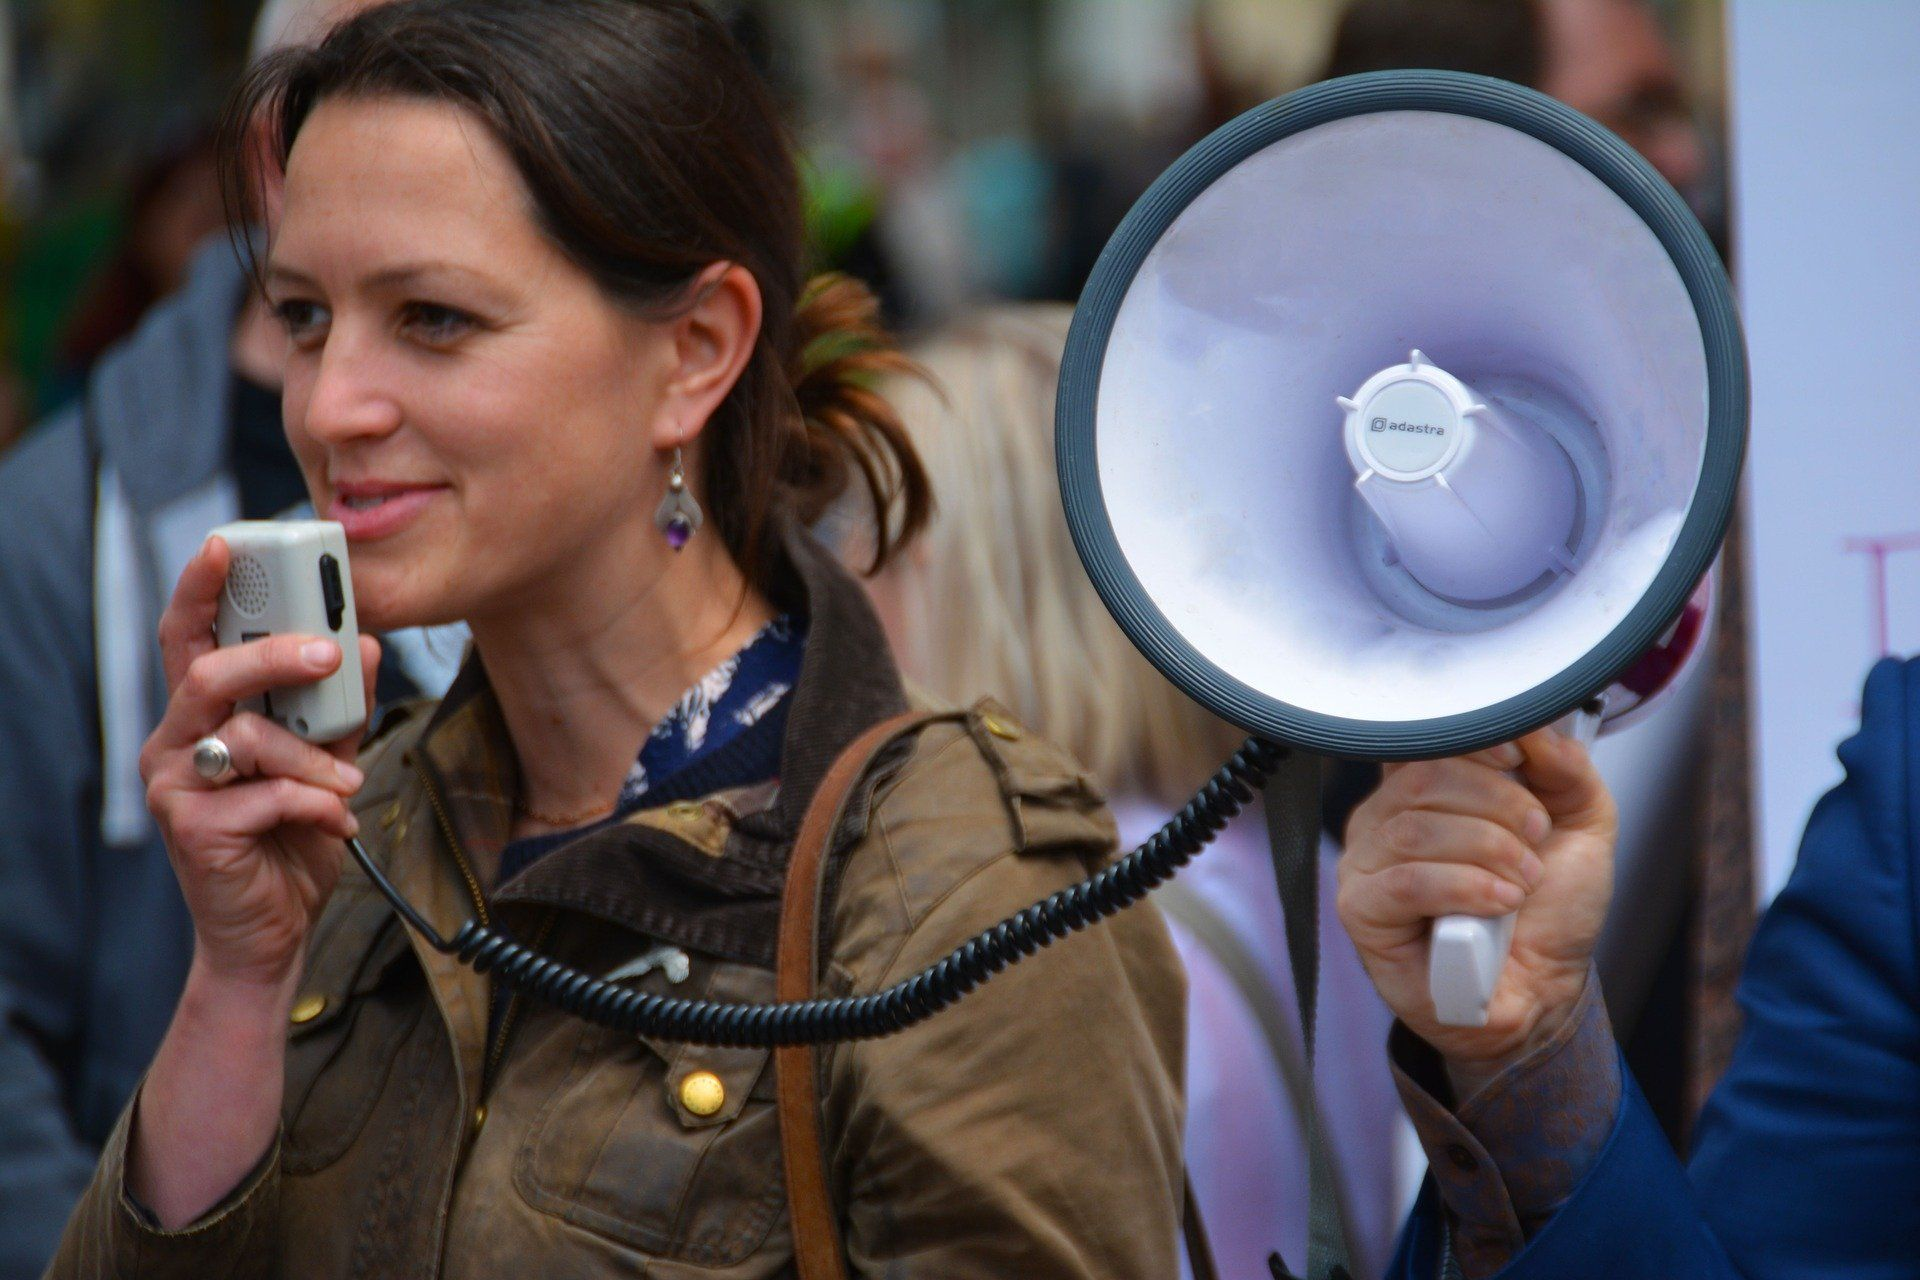 Lady with megaphone speaking